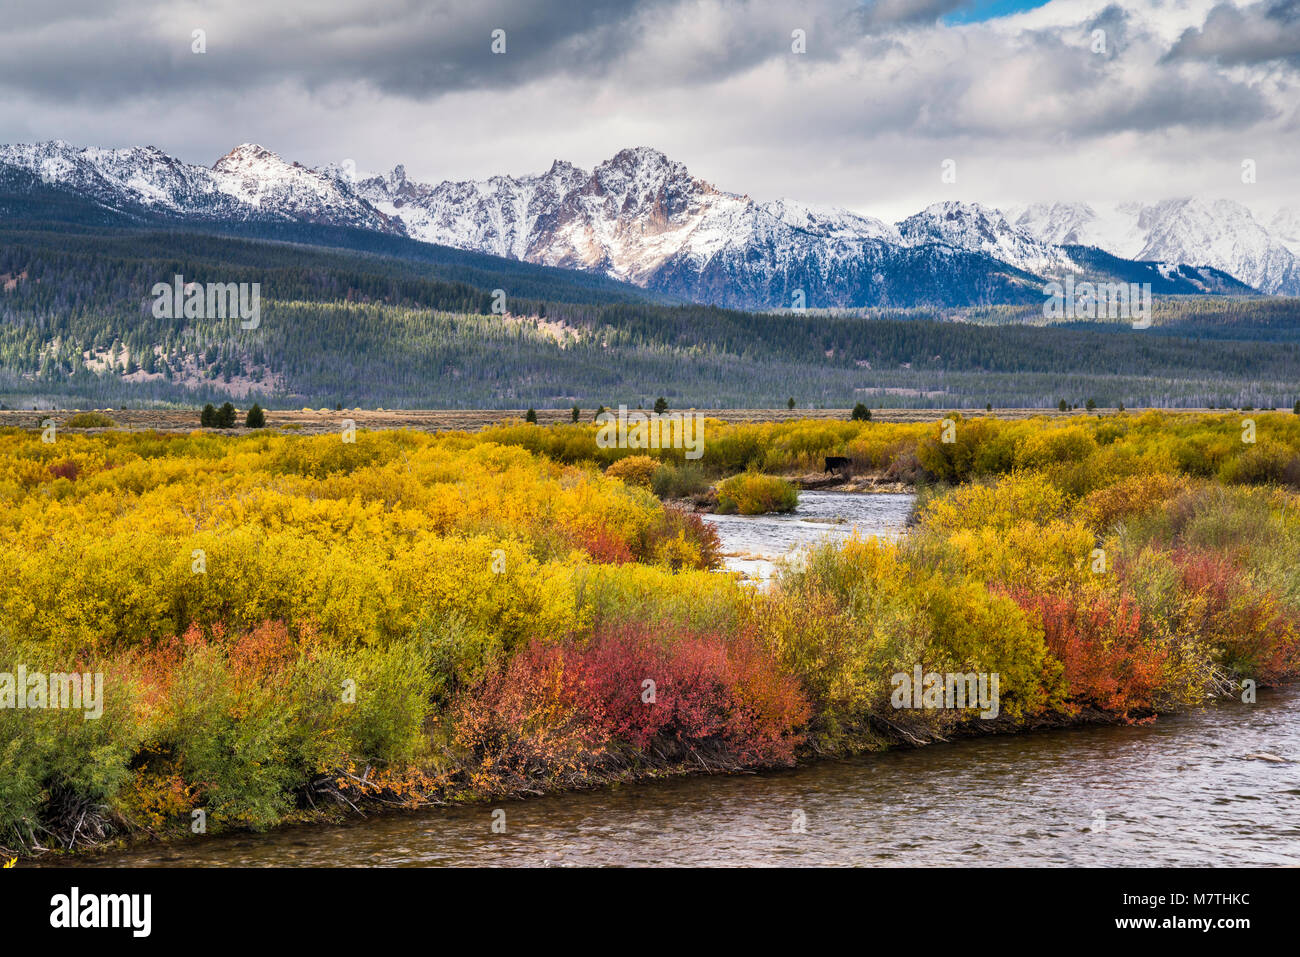 Sawtooth Mountains under snow over Salmon River, Sawtooth Valley in fall foliage, from Sawtooth Scenic Byway, Sawtooth - Stock Image